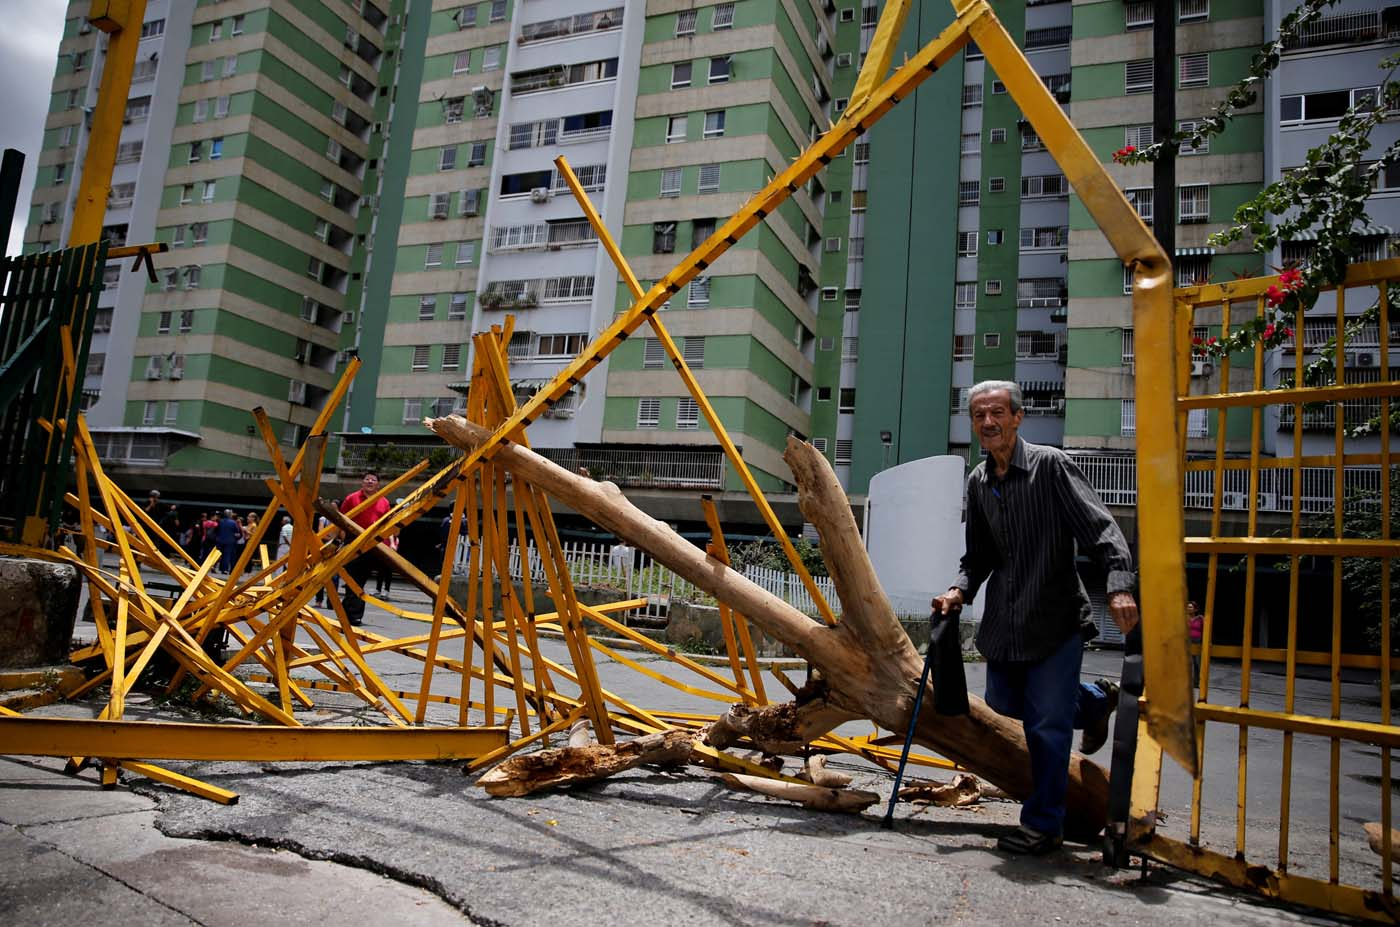 FILE PHOTO: A man walks through a broken main gate after opposition supporters and security forces clashed in and outside residential buildings on Tuesday according to residents, in Caracas, Venezuela June 14, 2017. REUTERS/Ivan Alvarado/File Photo